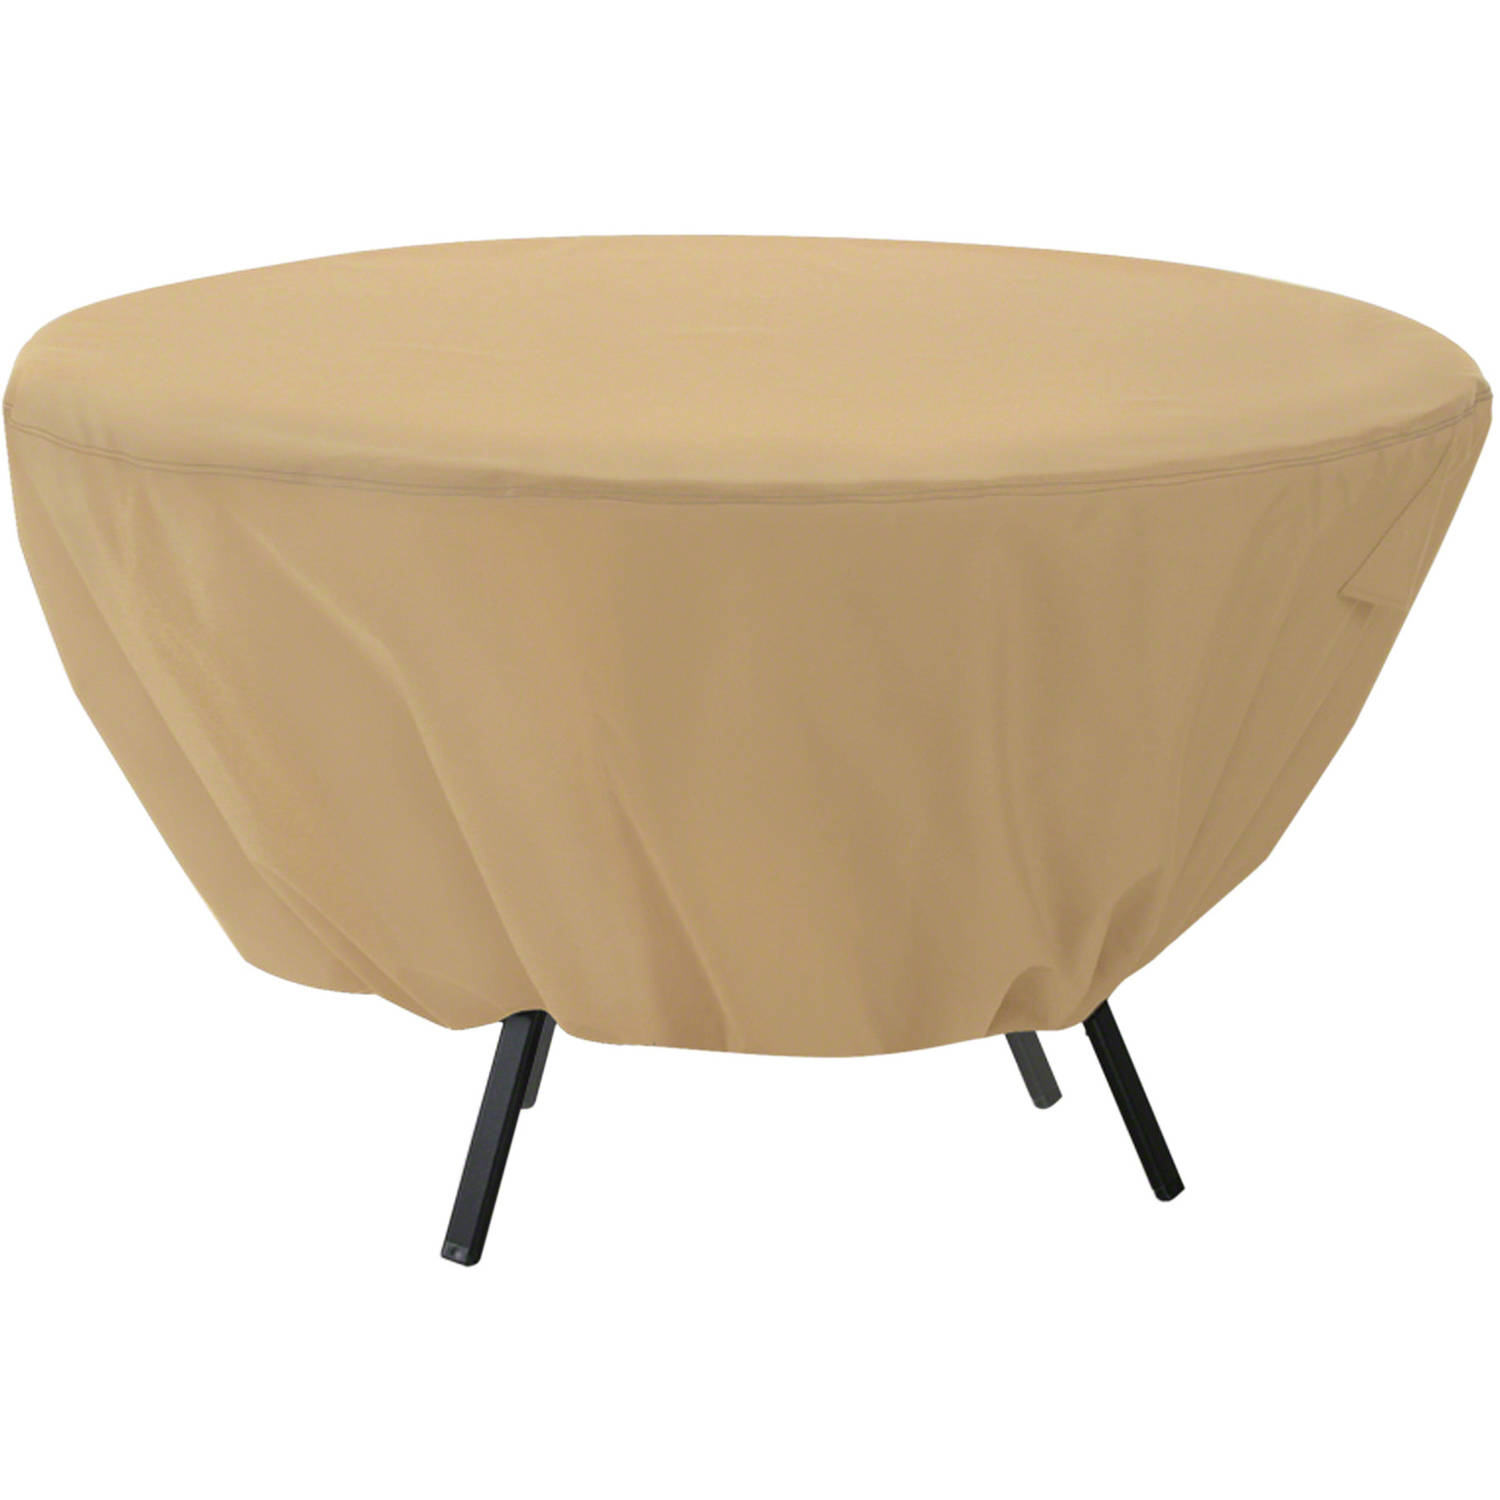 Classic Accessories Terrazzo® Round Patio Table Cover - All Weather Protection Outdoor Furniture Cover (58202-EC)